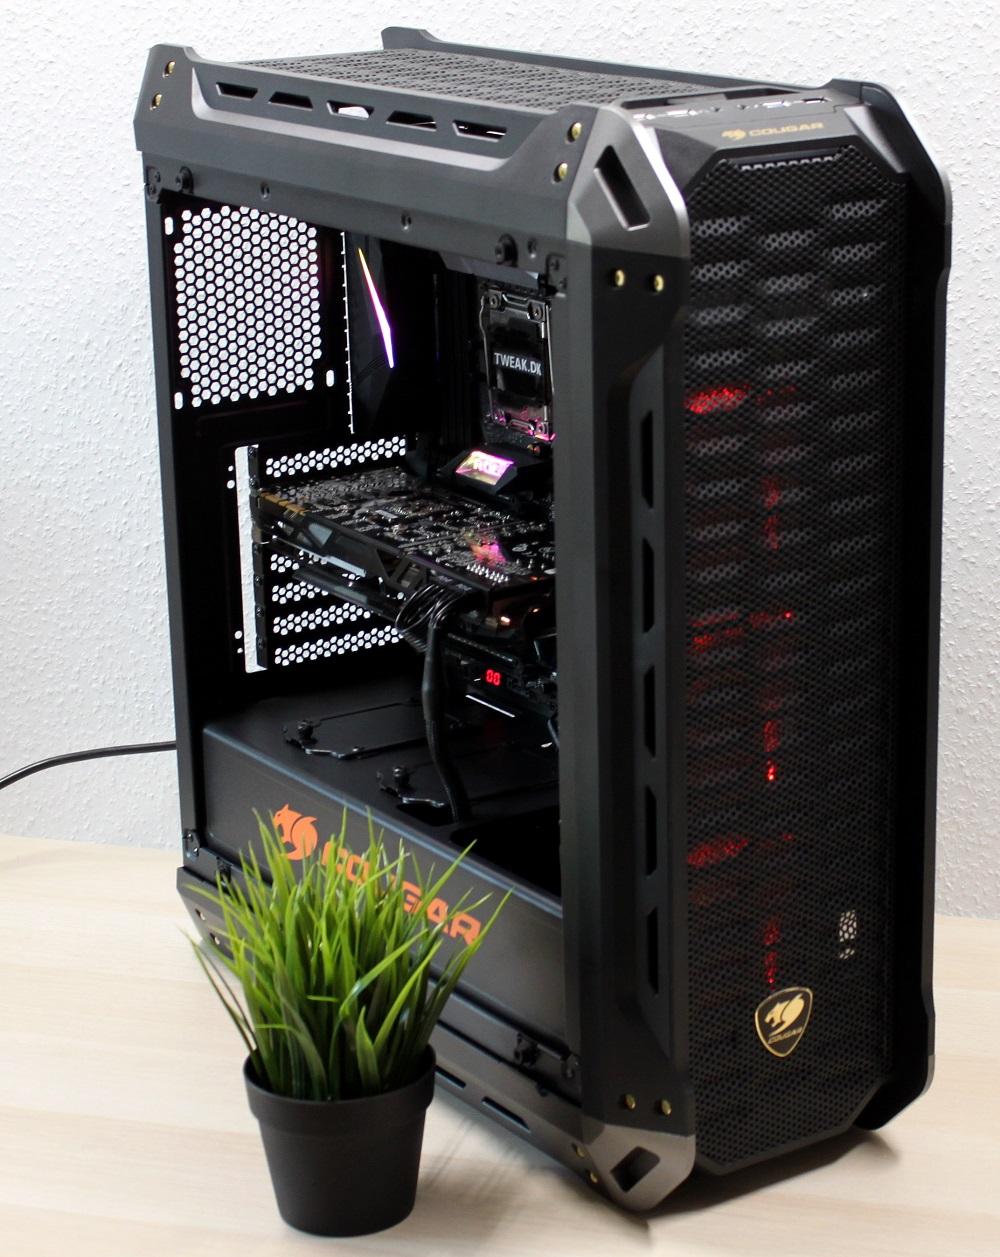 Cougar computer mid-tower chassis